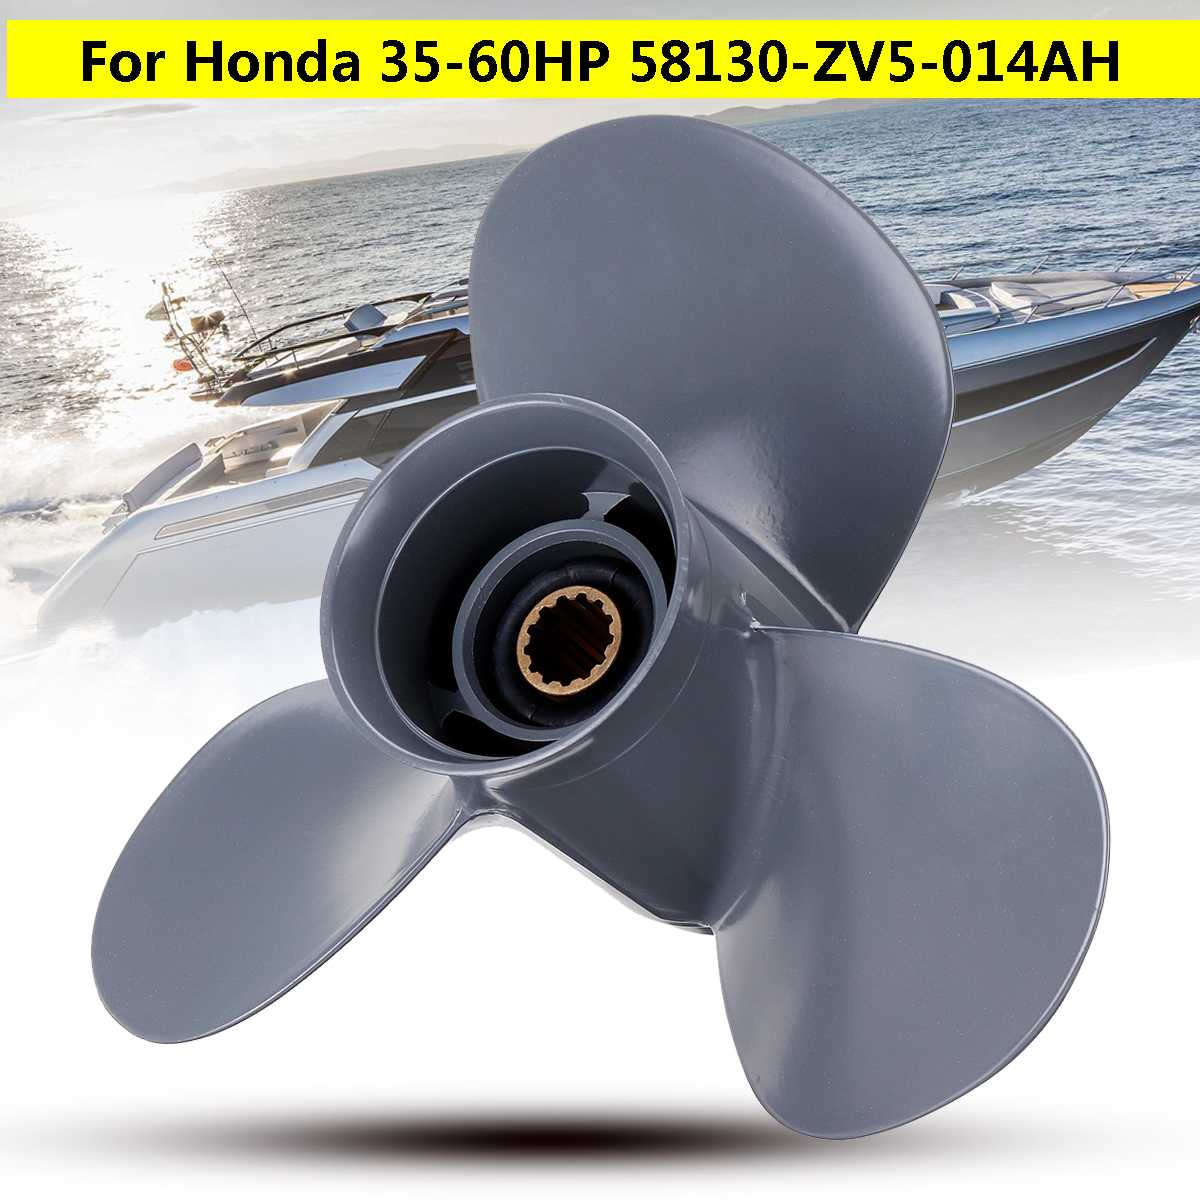 58130-ZV5-000ZA Aluminum Alloy 11 1/4 X 13 Boat Outboard Propeller For Honda 35-60HP Gray 3 Blades 13 Spline Tooth Marine Parts